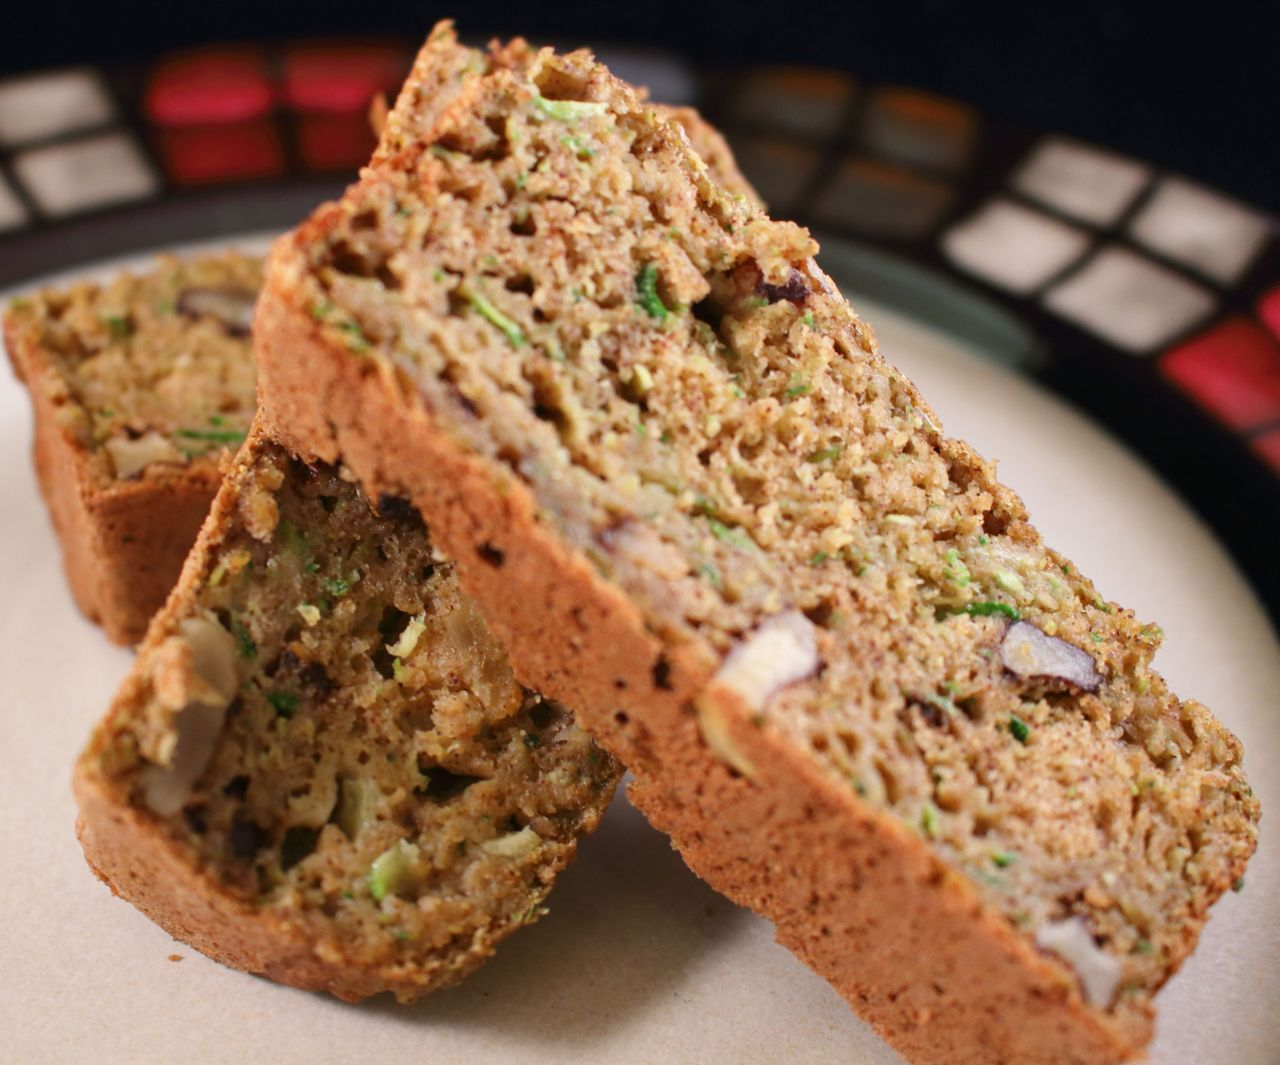 Zucchini and Walnut Bread - Plated 2